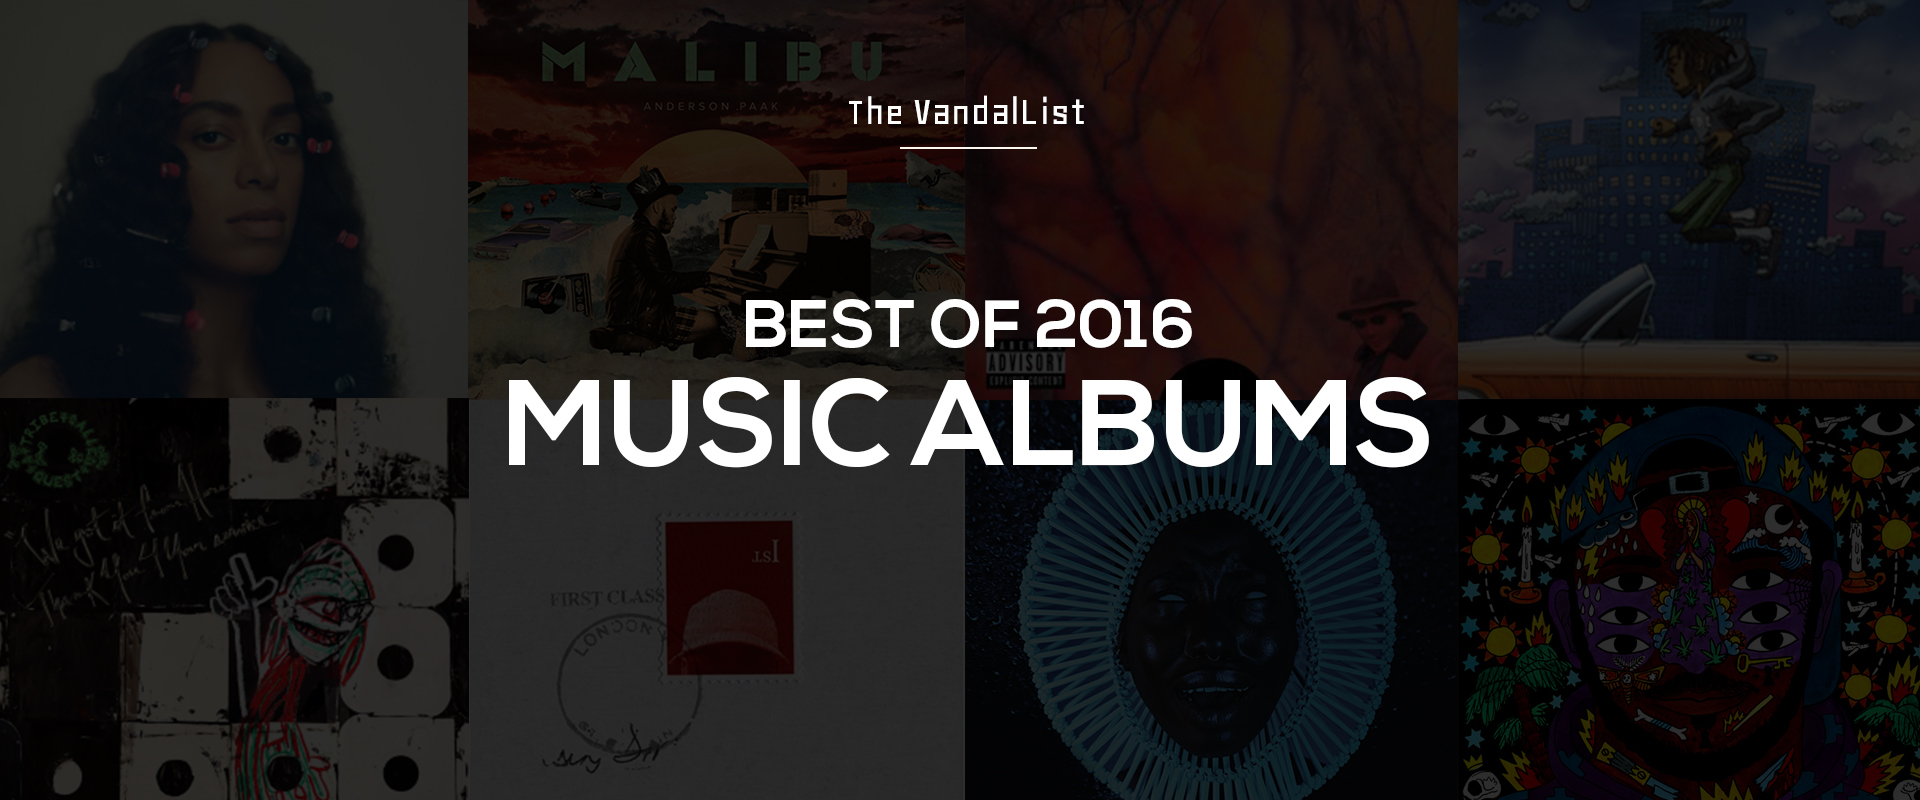 best-of-2016-music-albums